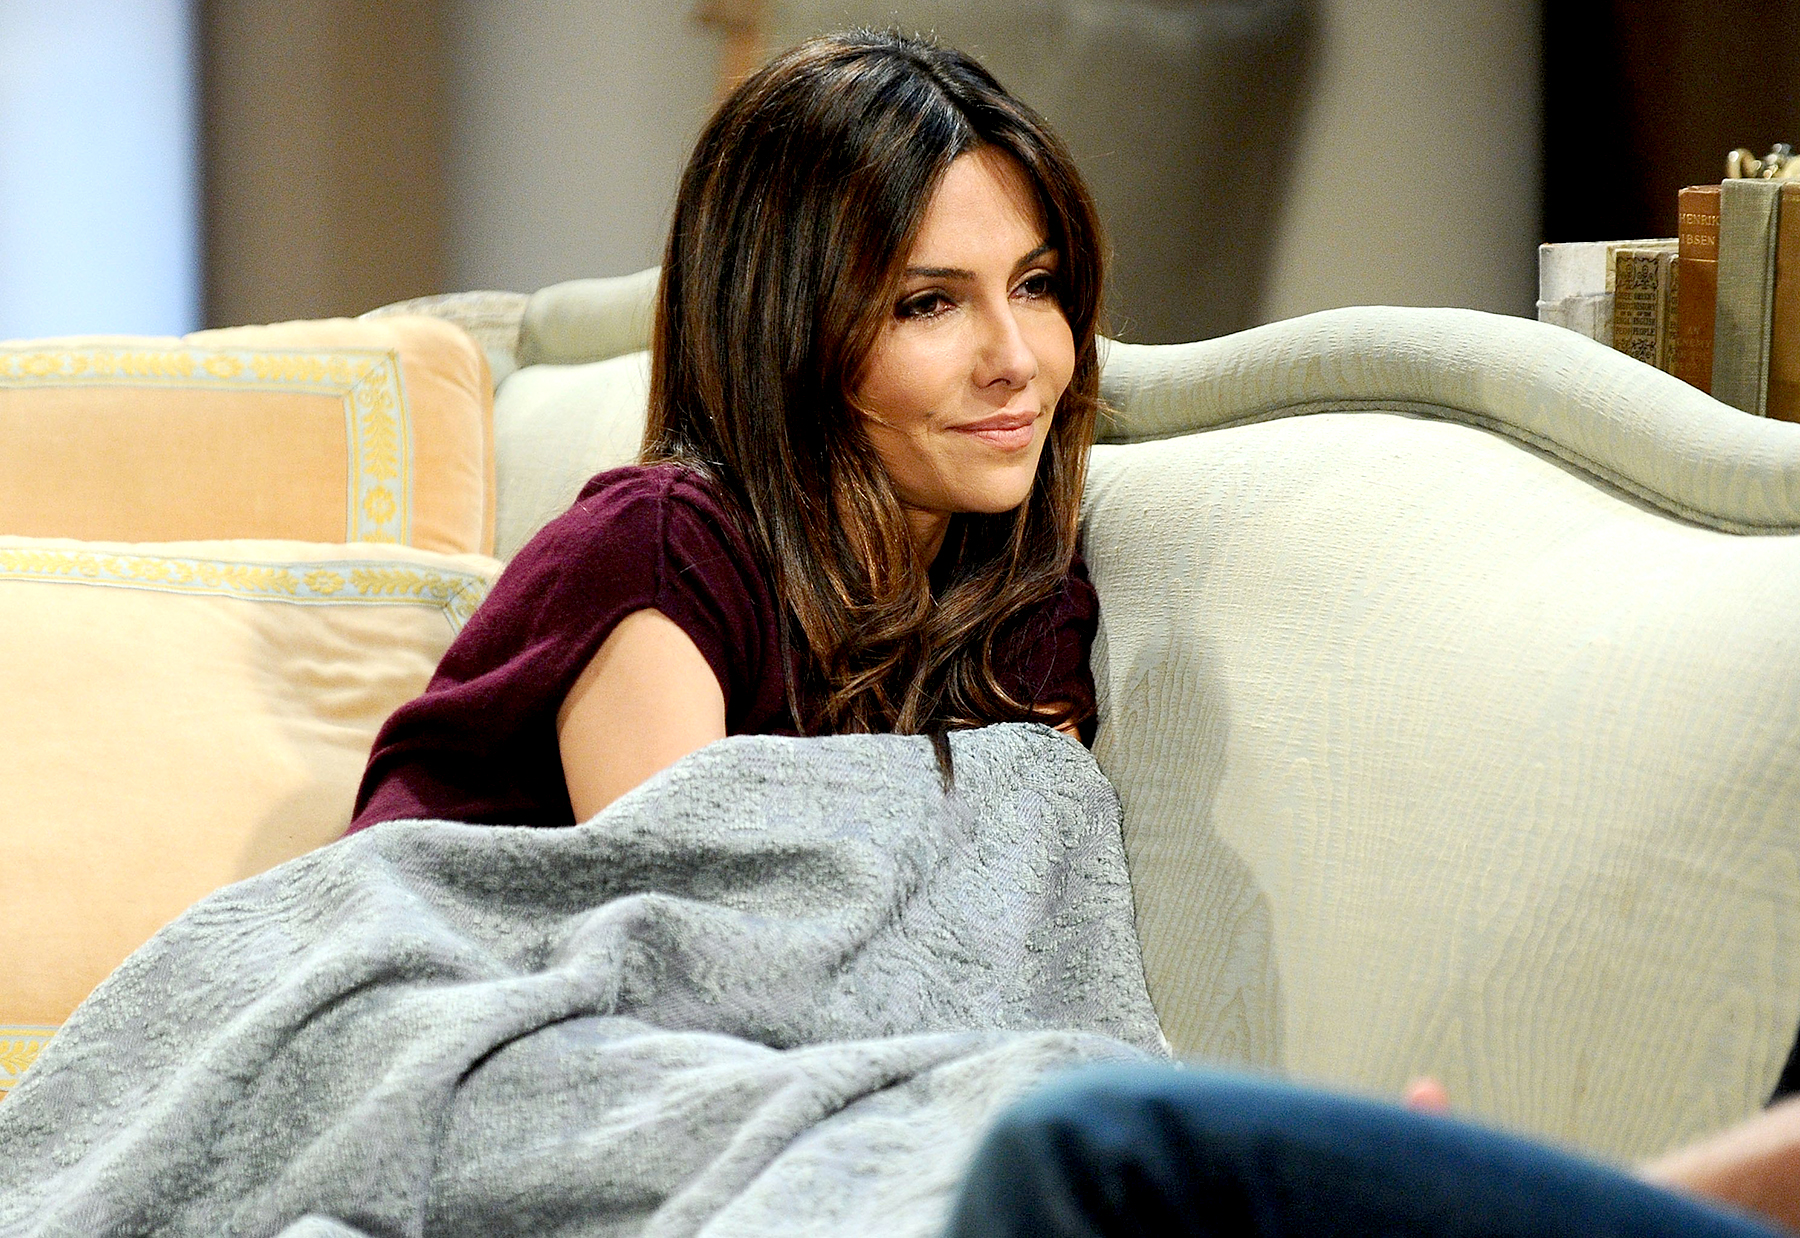 Heartbreak For Vanessa Marcil As She Suffers Miscarriage